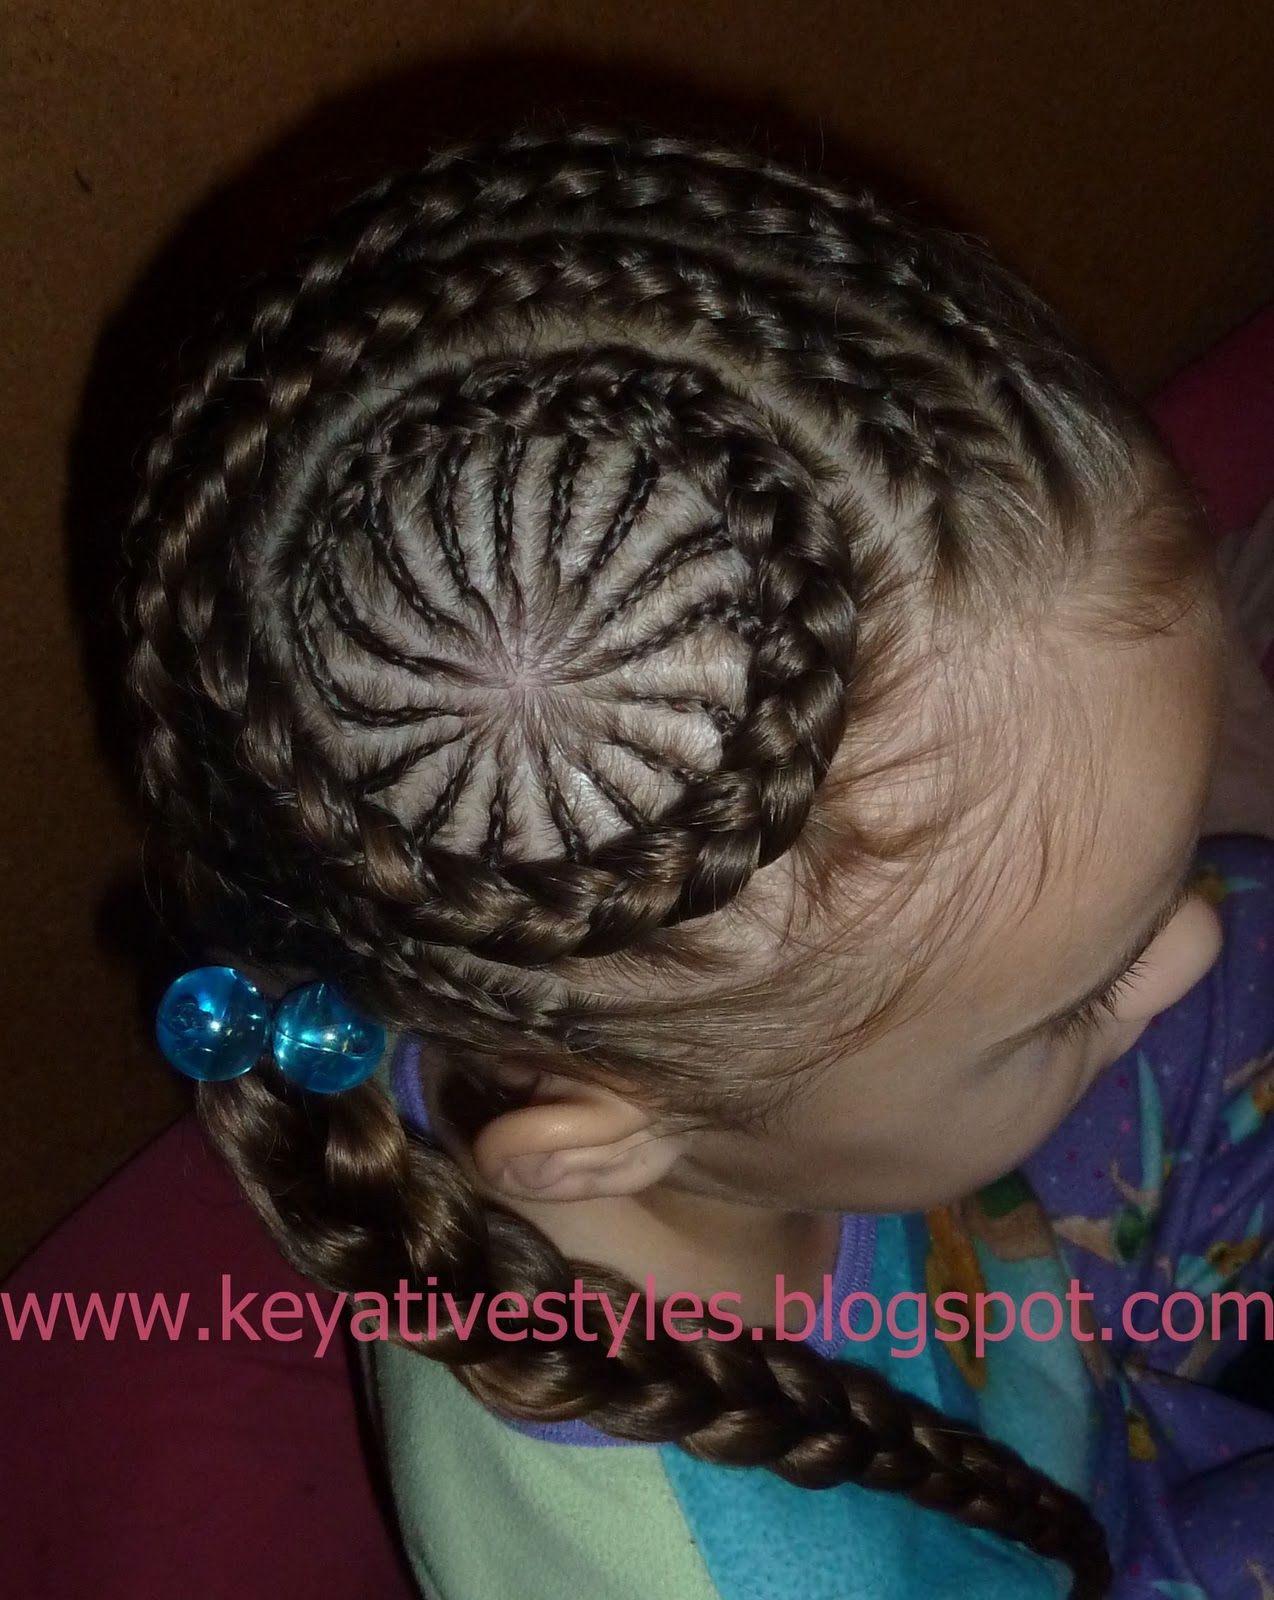 Keyative styles circle cornrows hair inspiration pinterest keyative styles circle cornrows ccuart Gallery